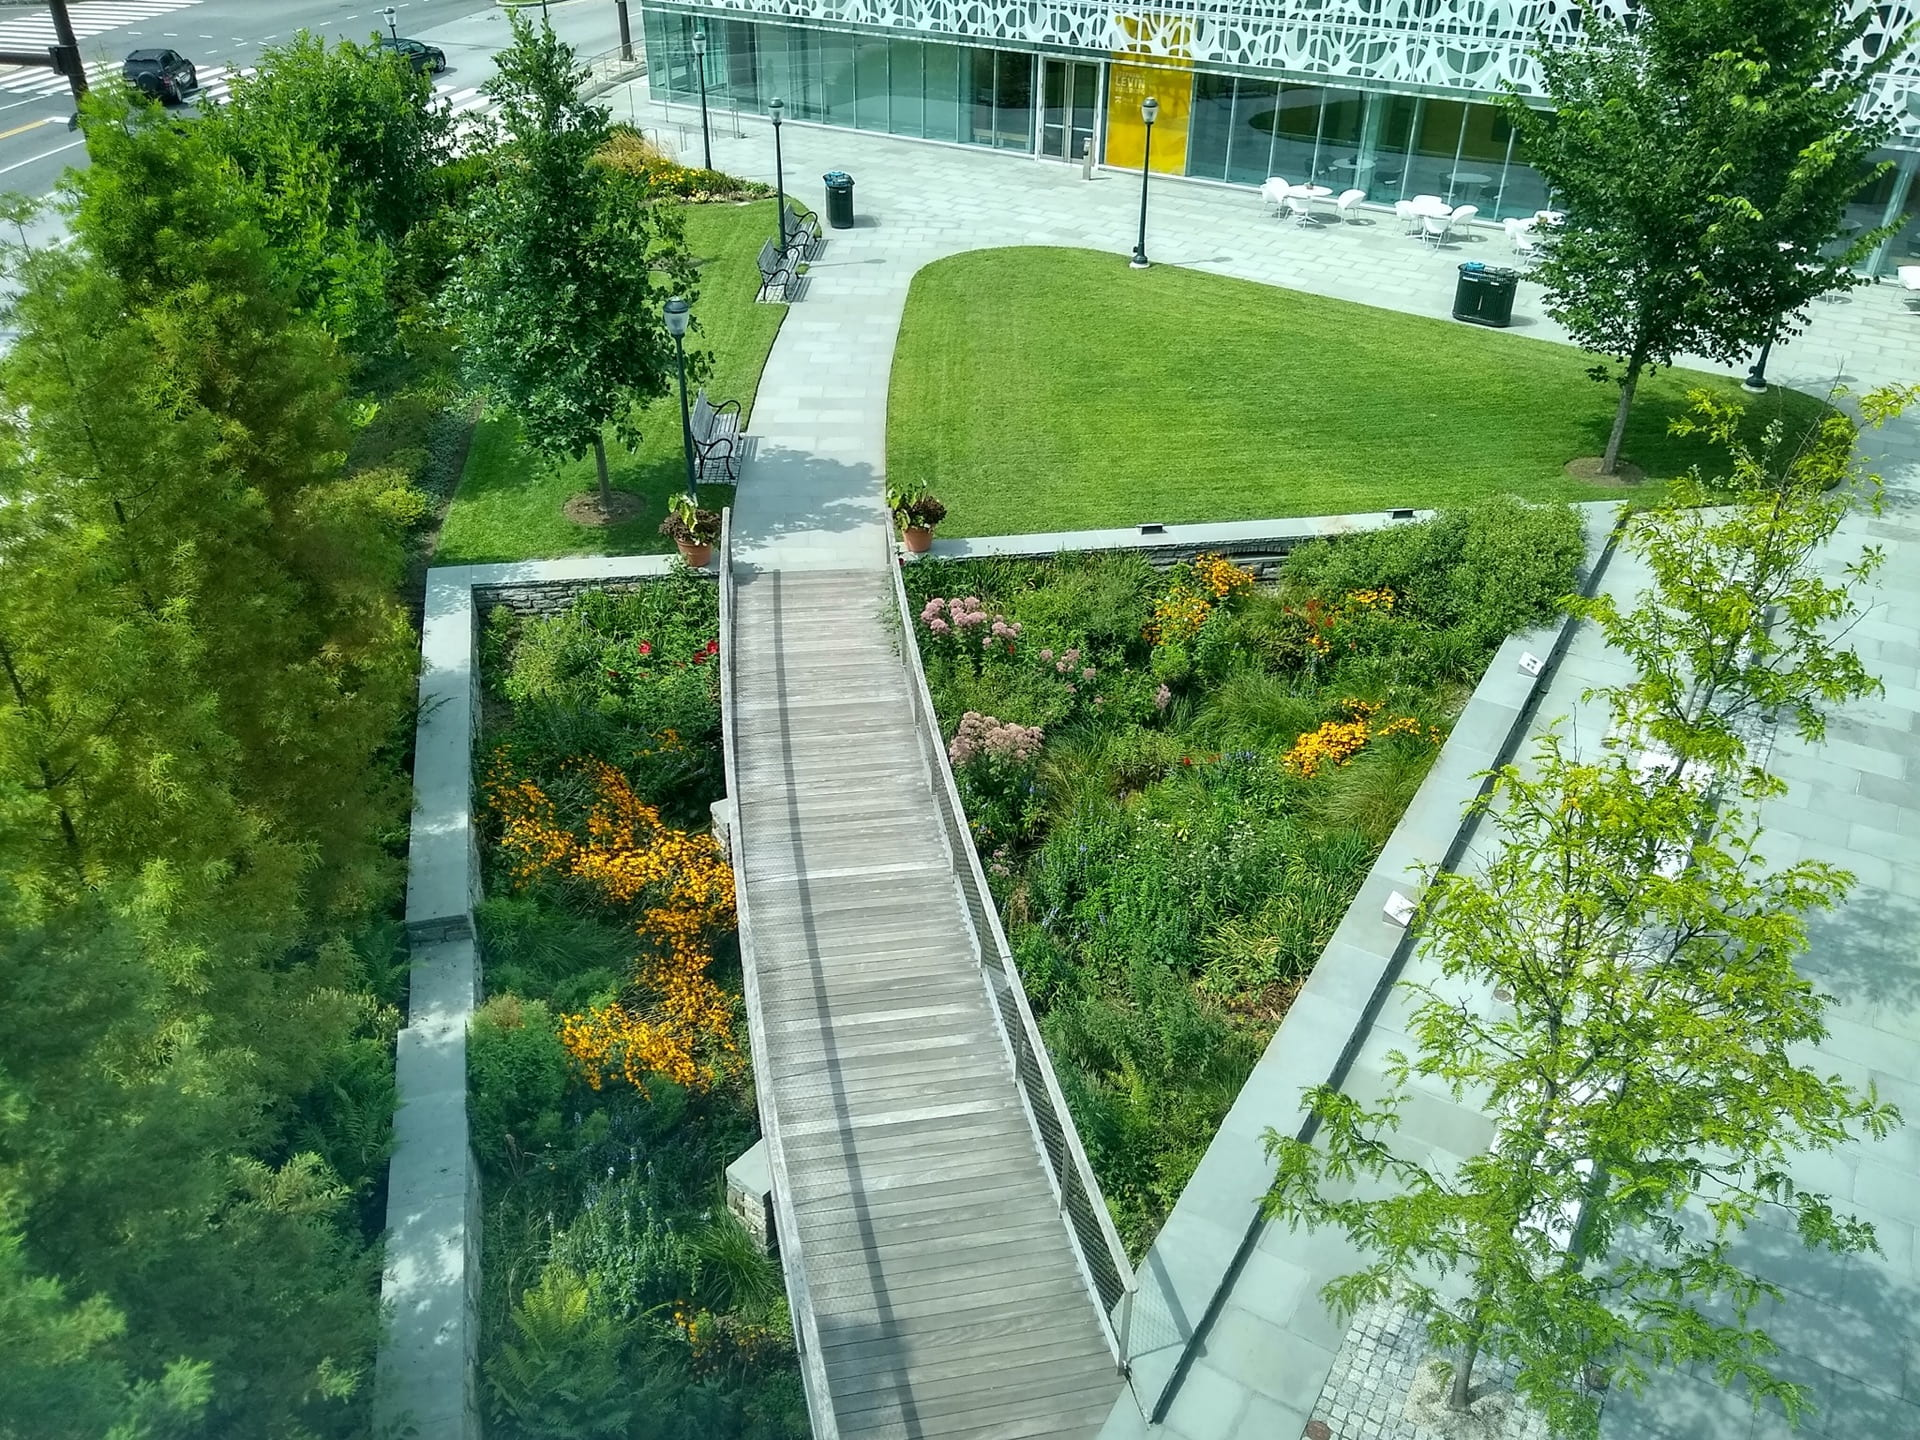 An aerial view of the Rain Garden in full bloom, seen from Lynch Labs.